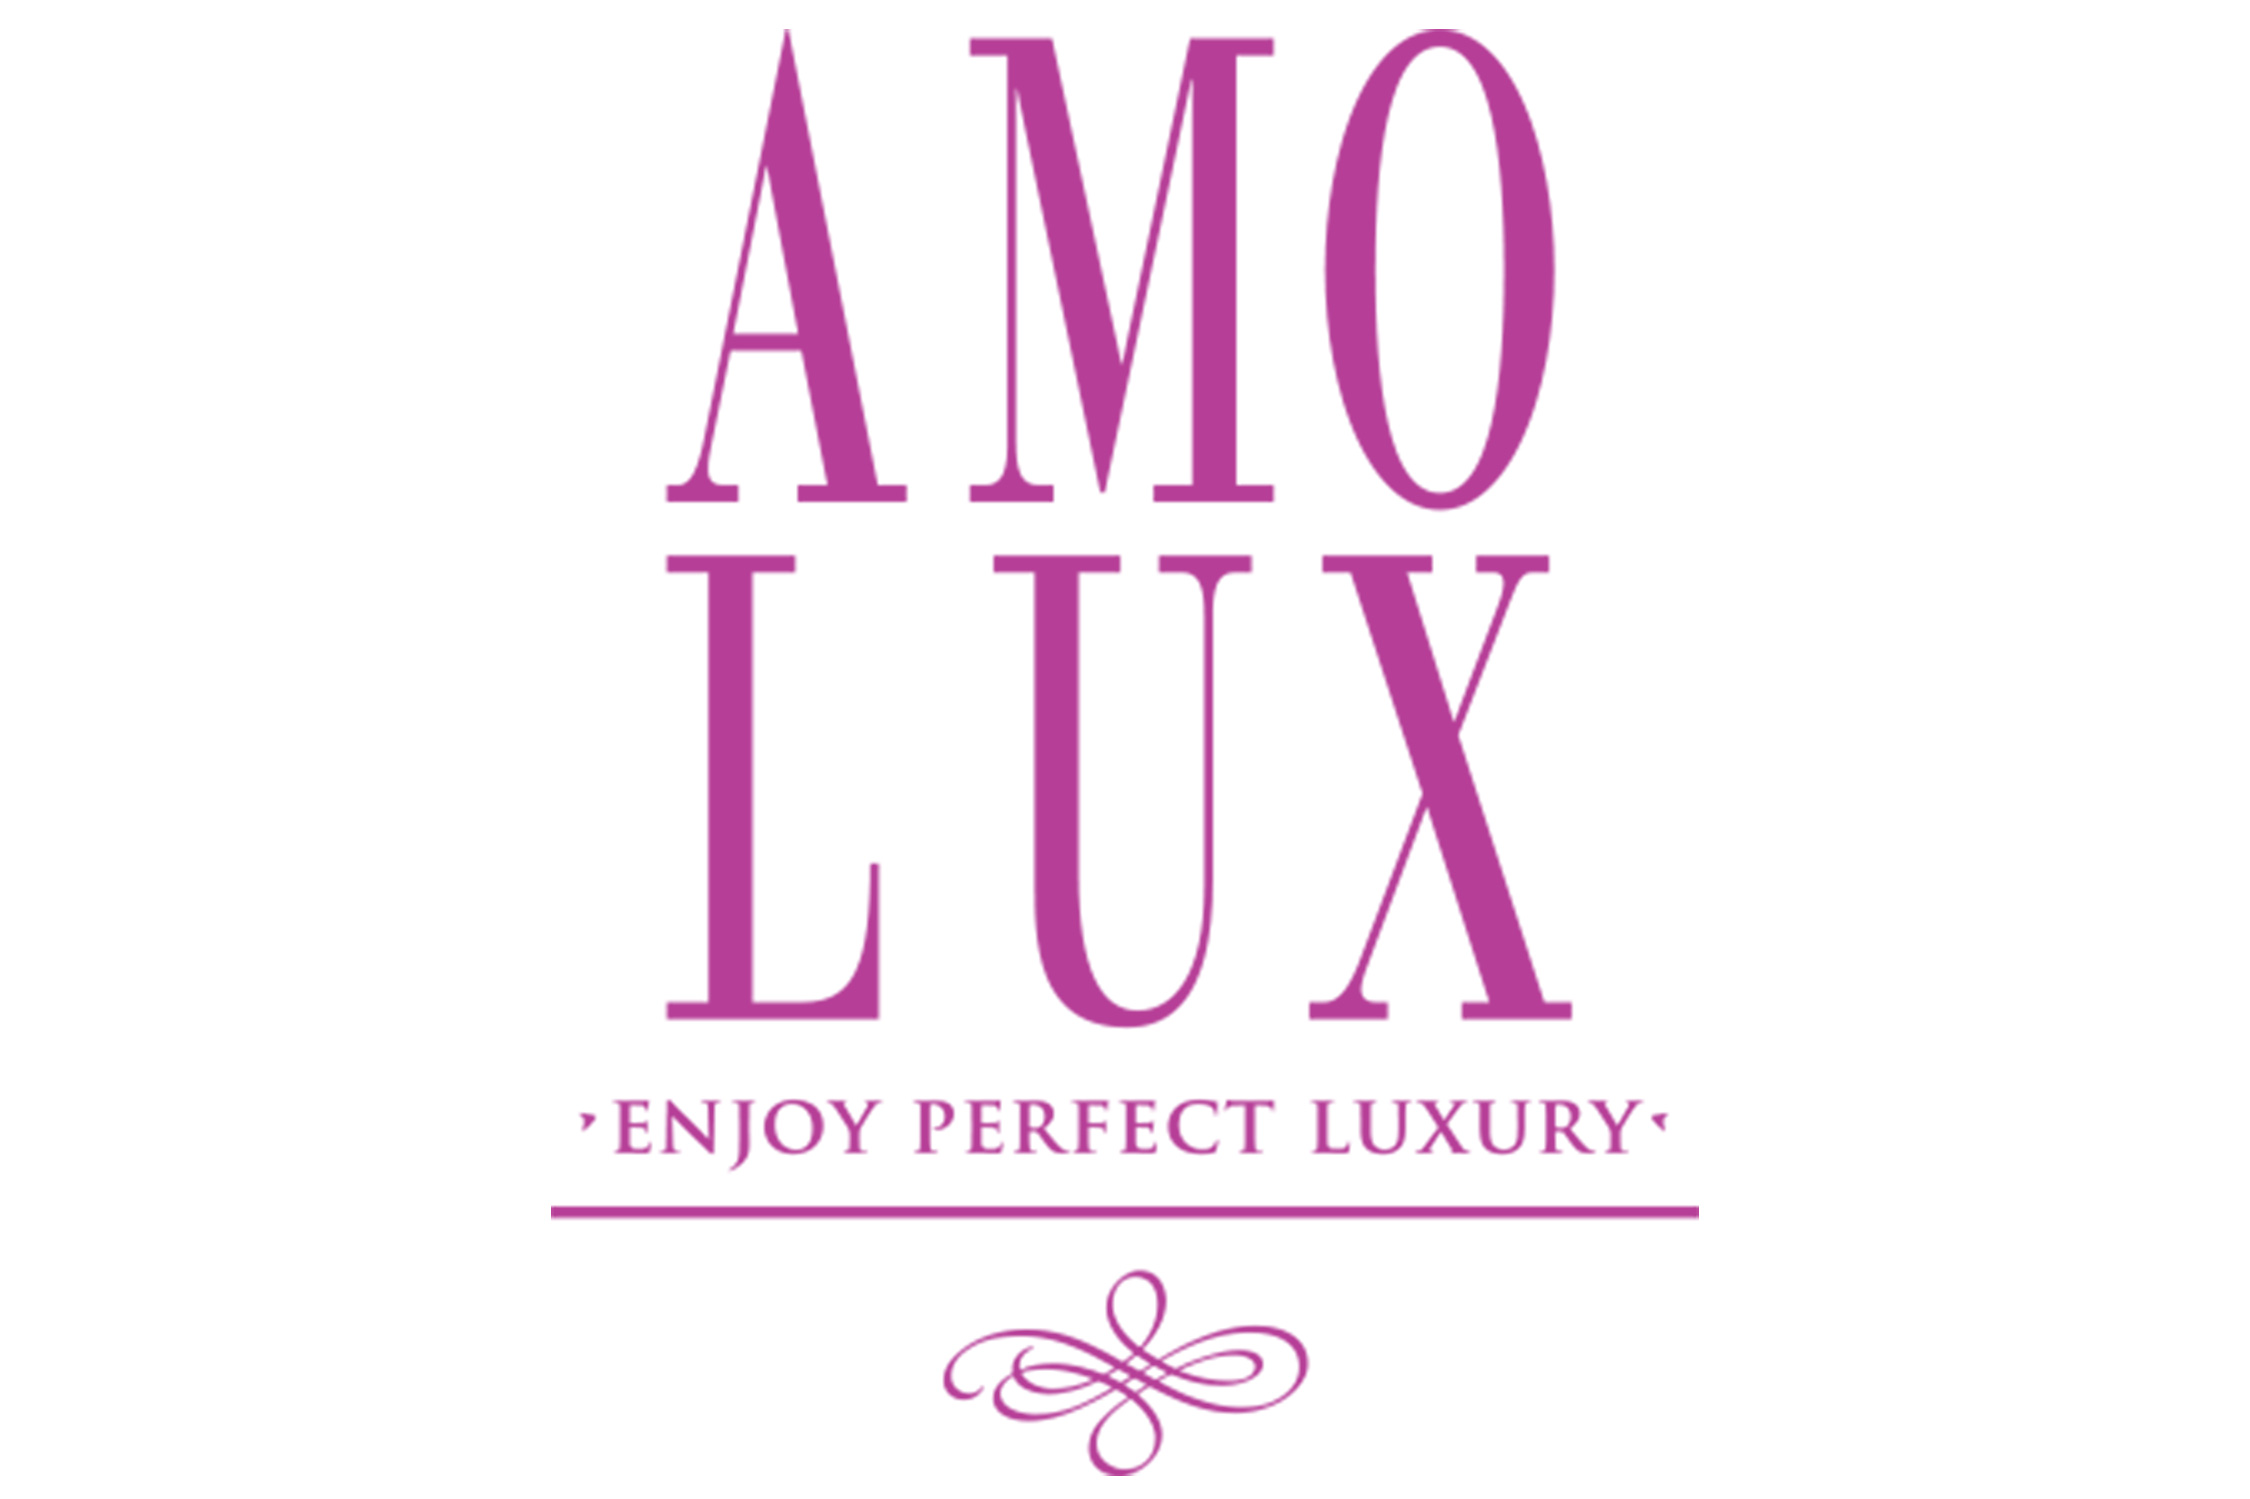 AMOLUX breast forms logo